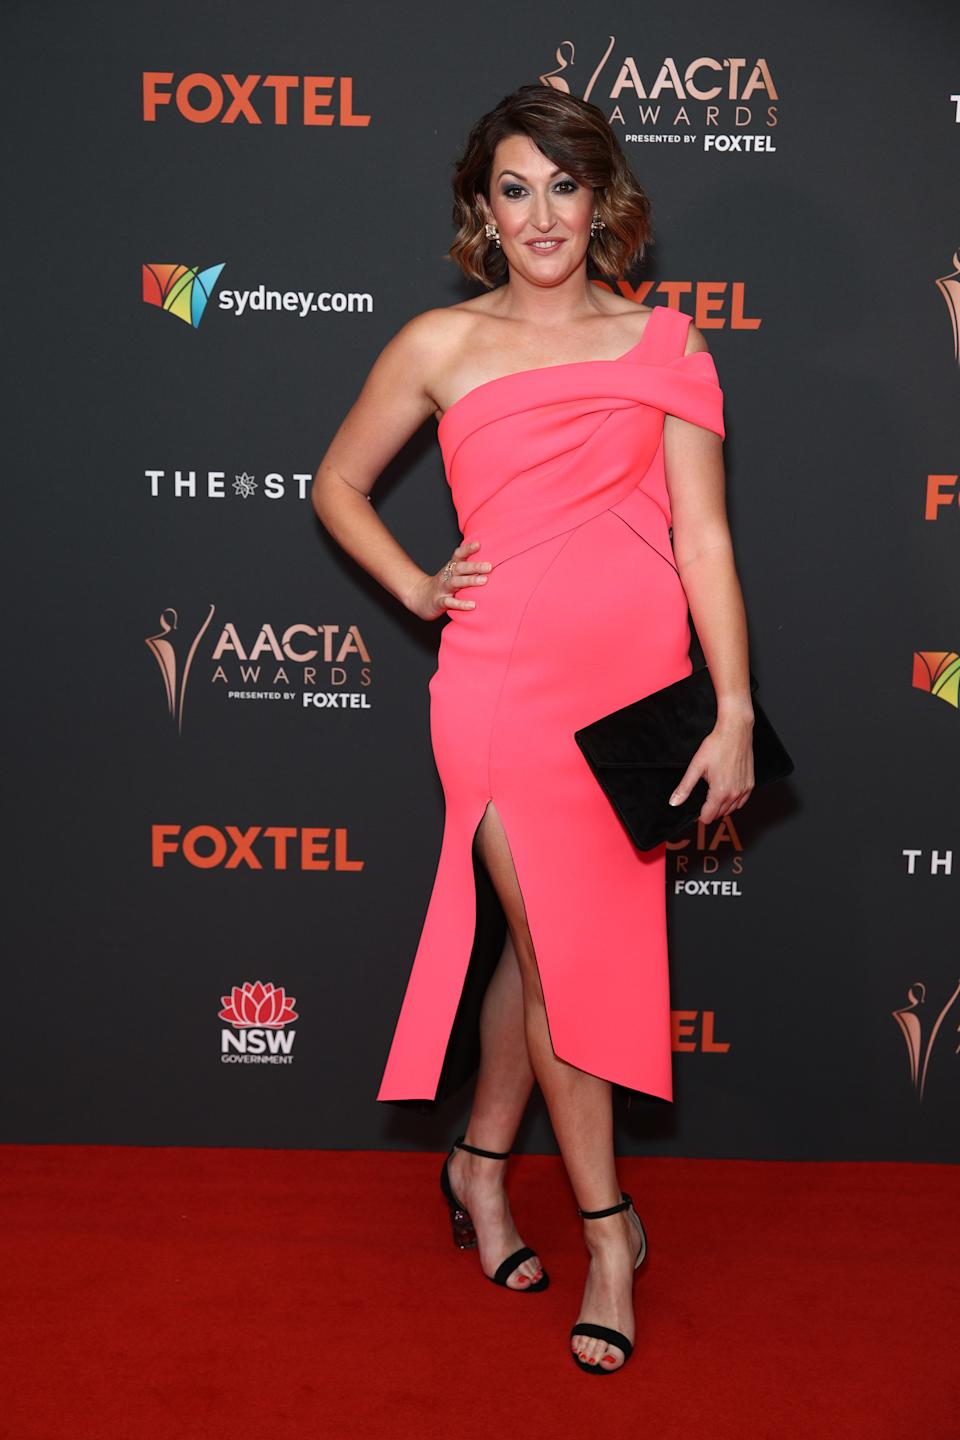 Celia Pacquola arrives ahead of the 2020 AACTA Awards presented by Foxtel at The Star on November 30, 2020 in Sydney, Australia.